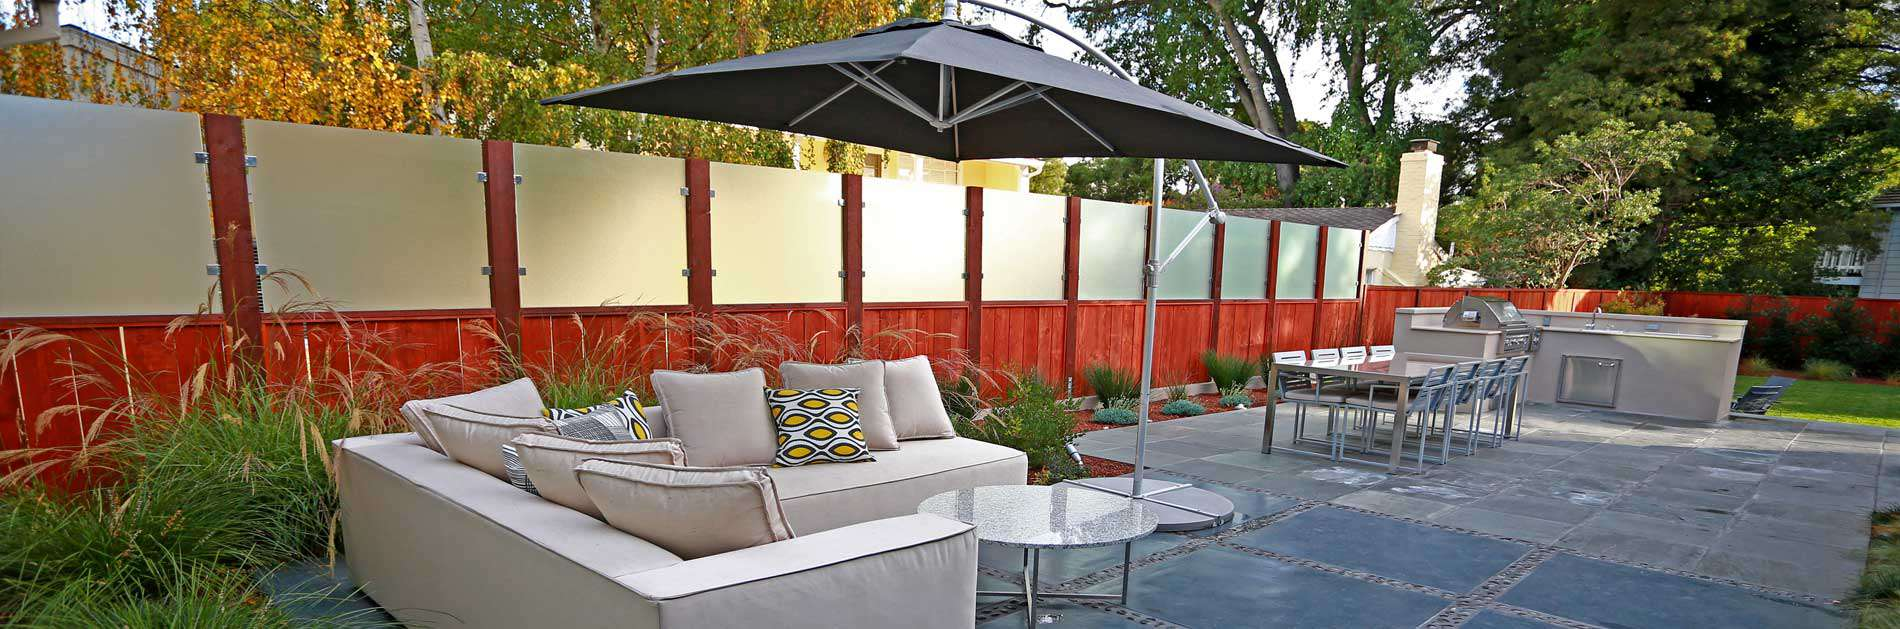 Backyard patio with seating and umbrella